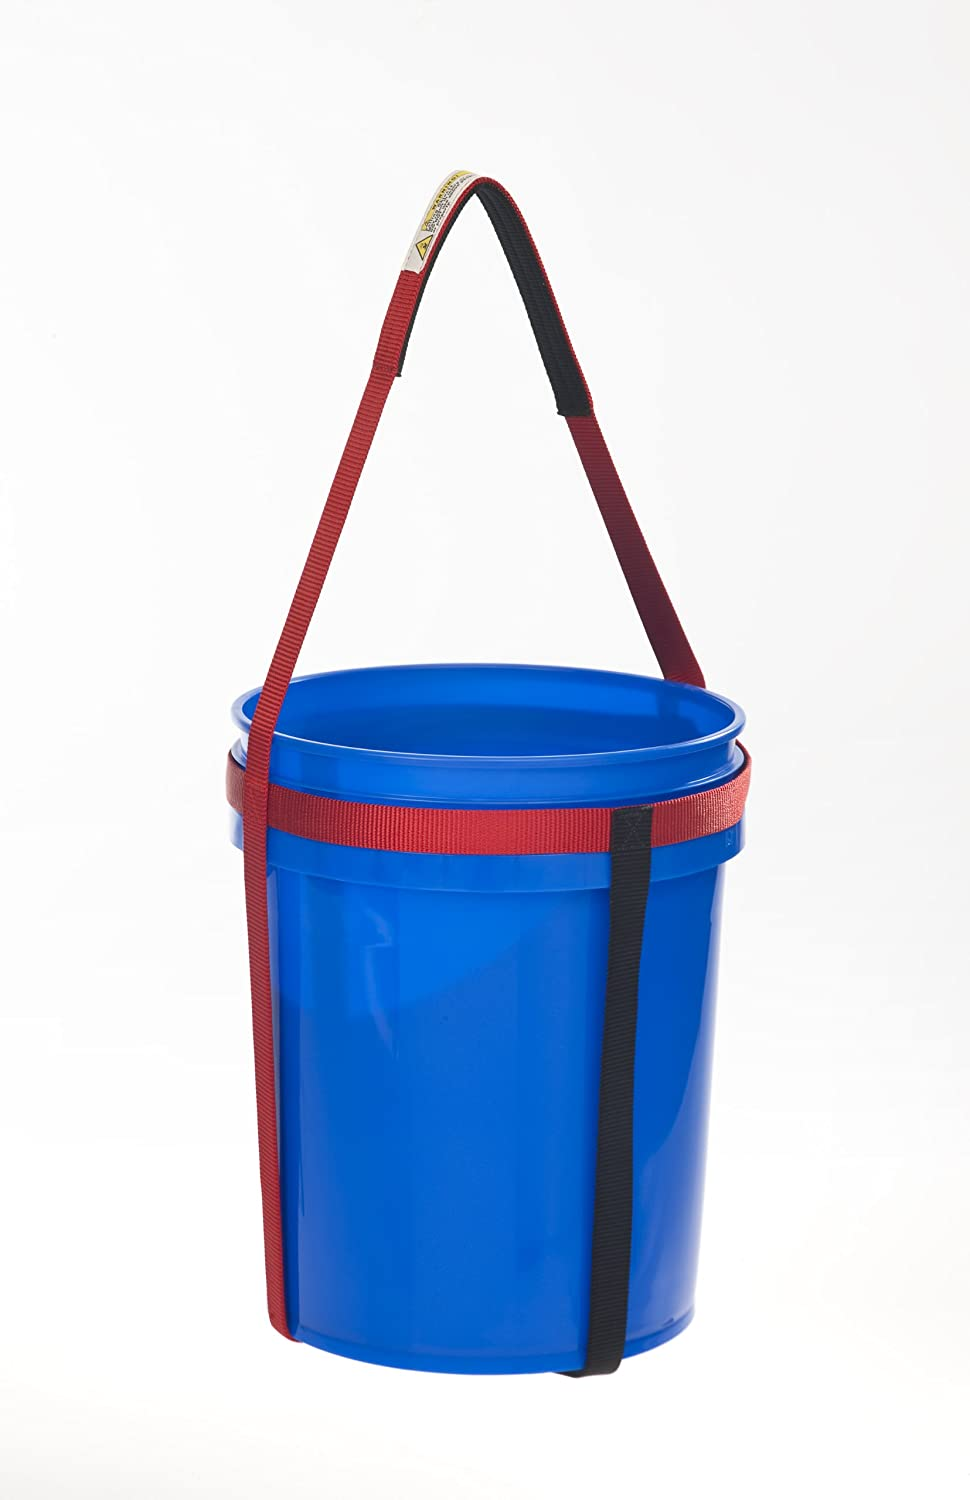 The Bucket Sling